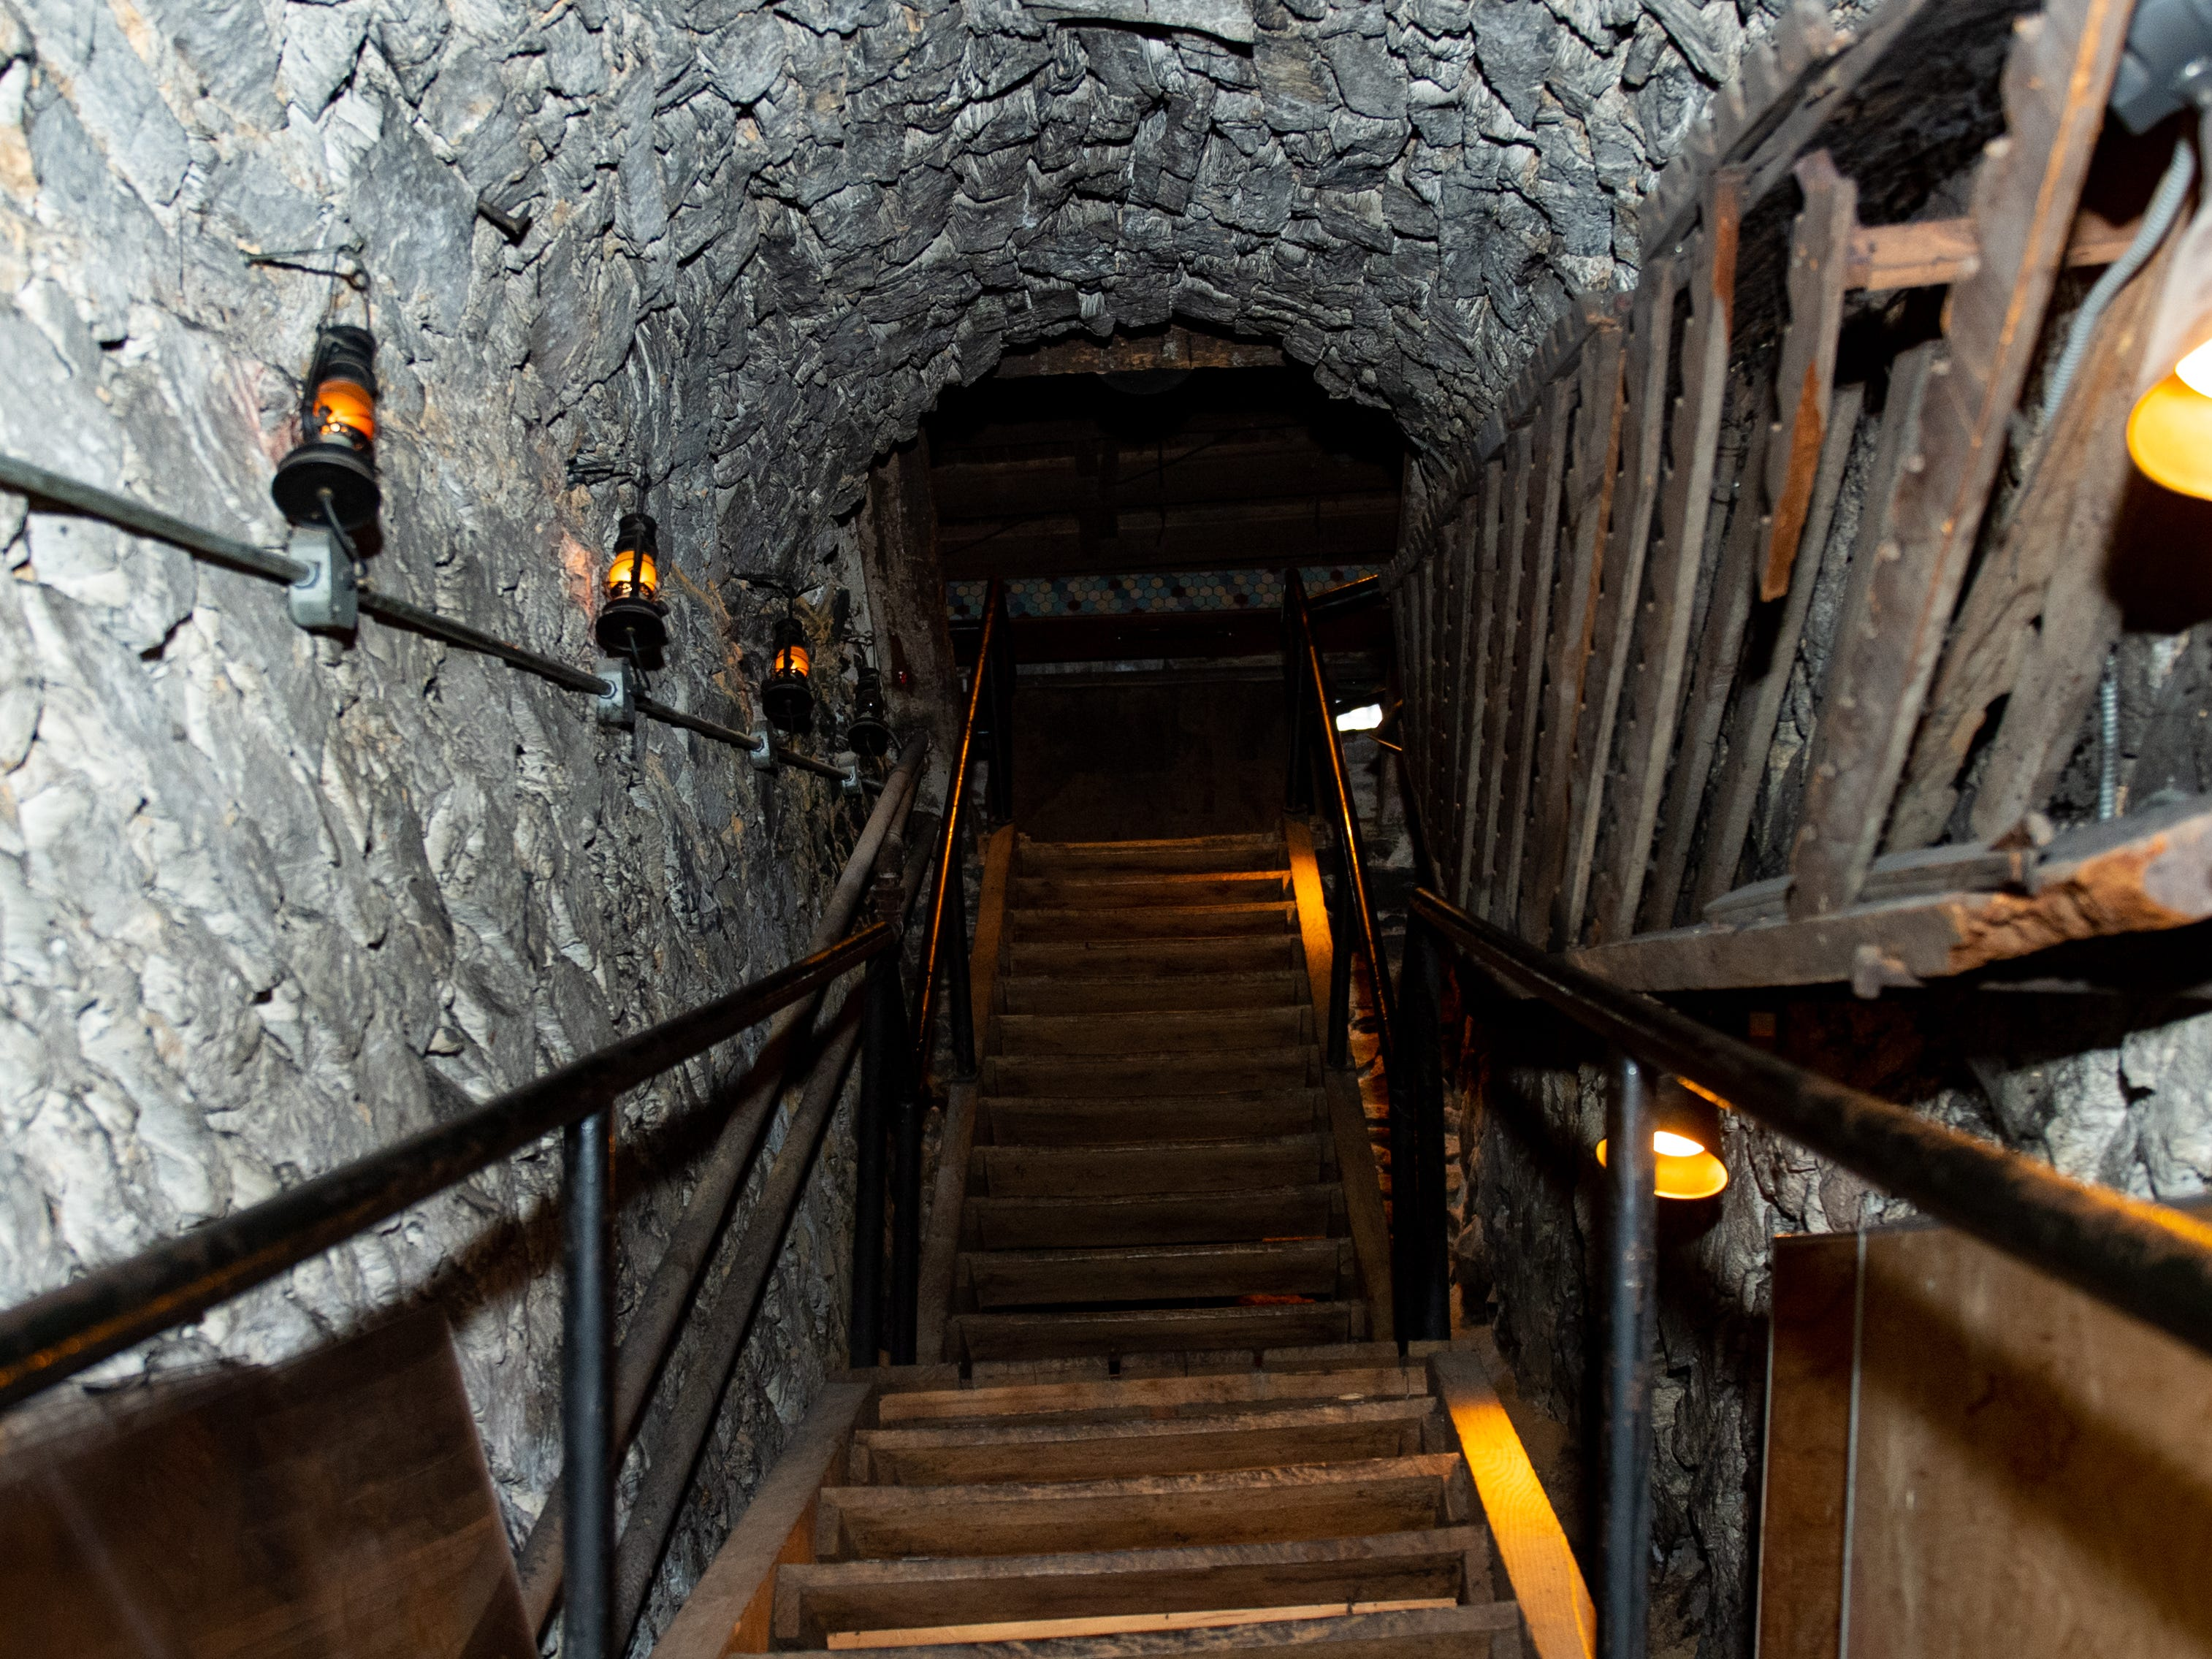 A long wooden stairway leads out of the Catacombs at Bube's Brewery, February 22, 2019.